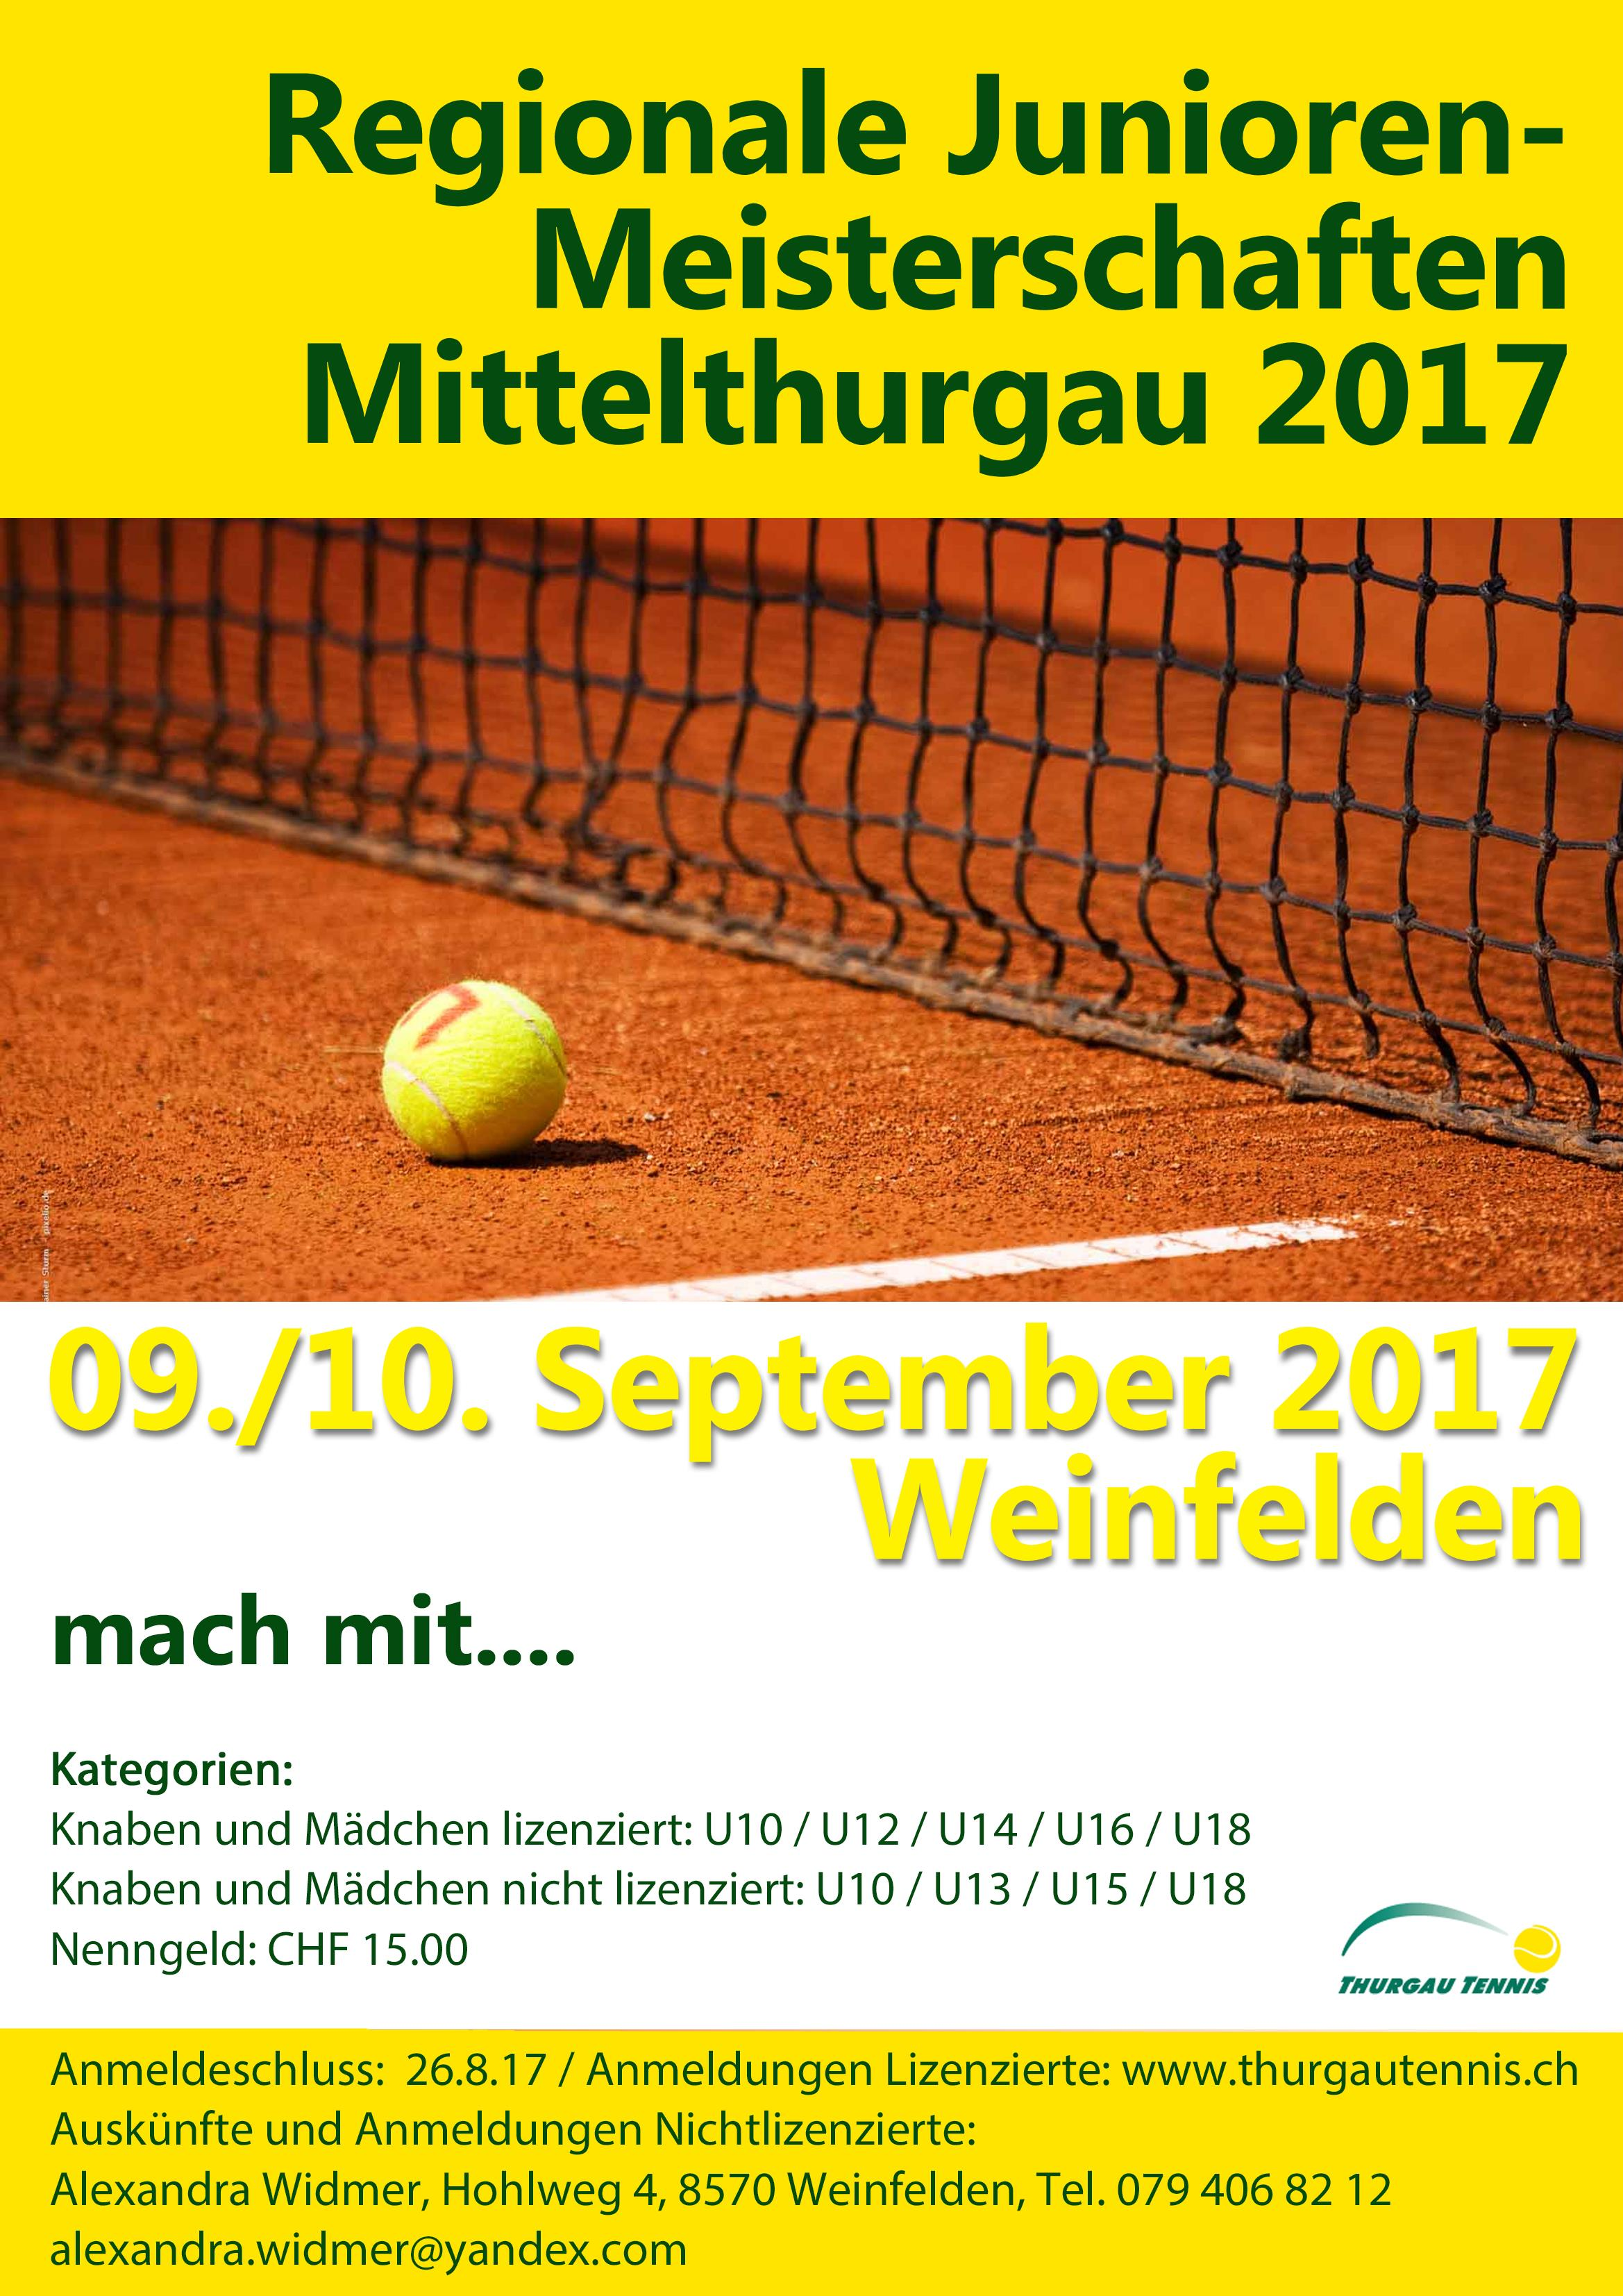 Regionale Junioren-Tennismeisterschaften 2017 Weinfelden vom 09./10. September 2017